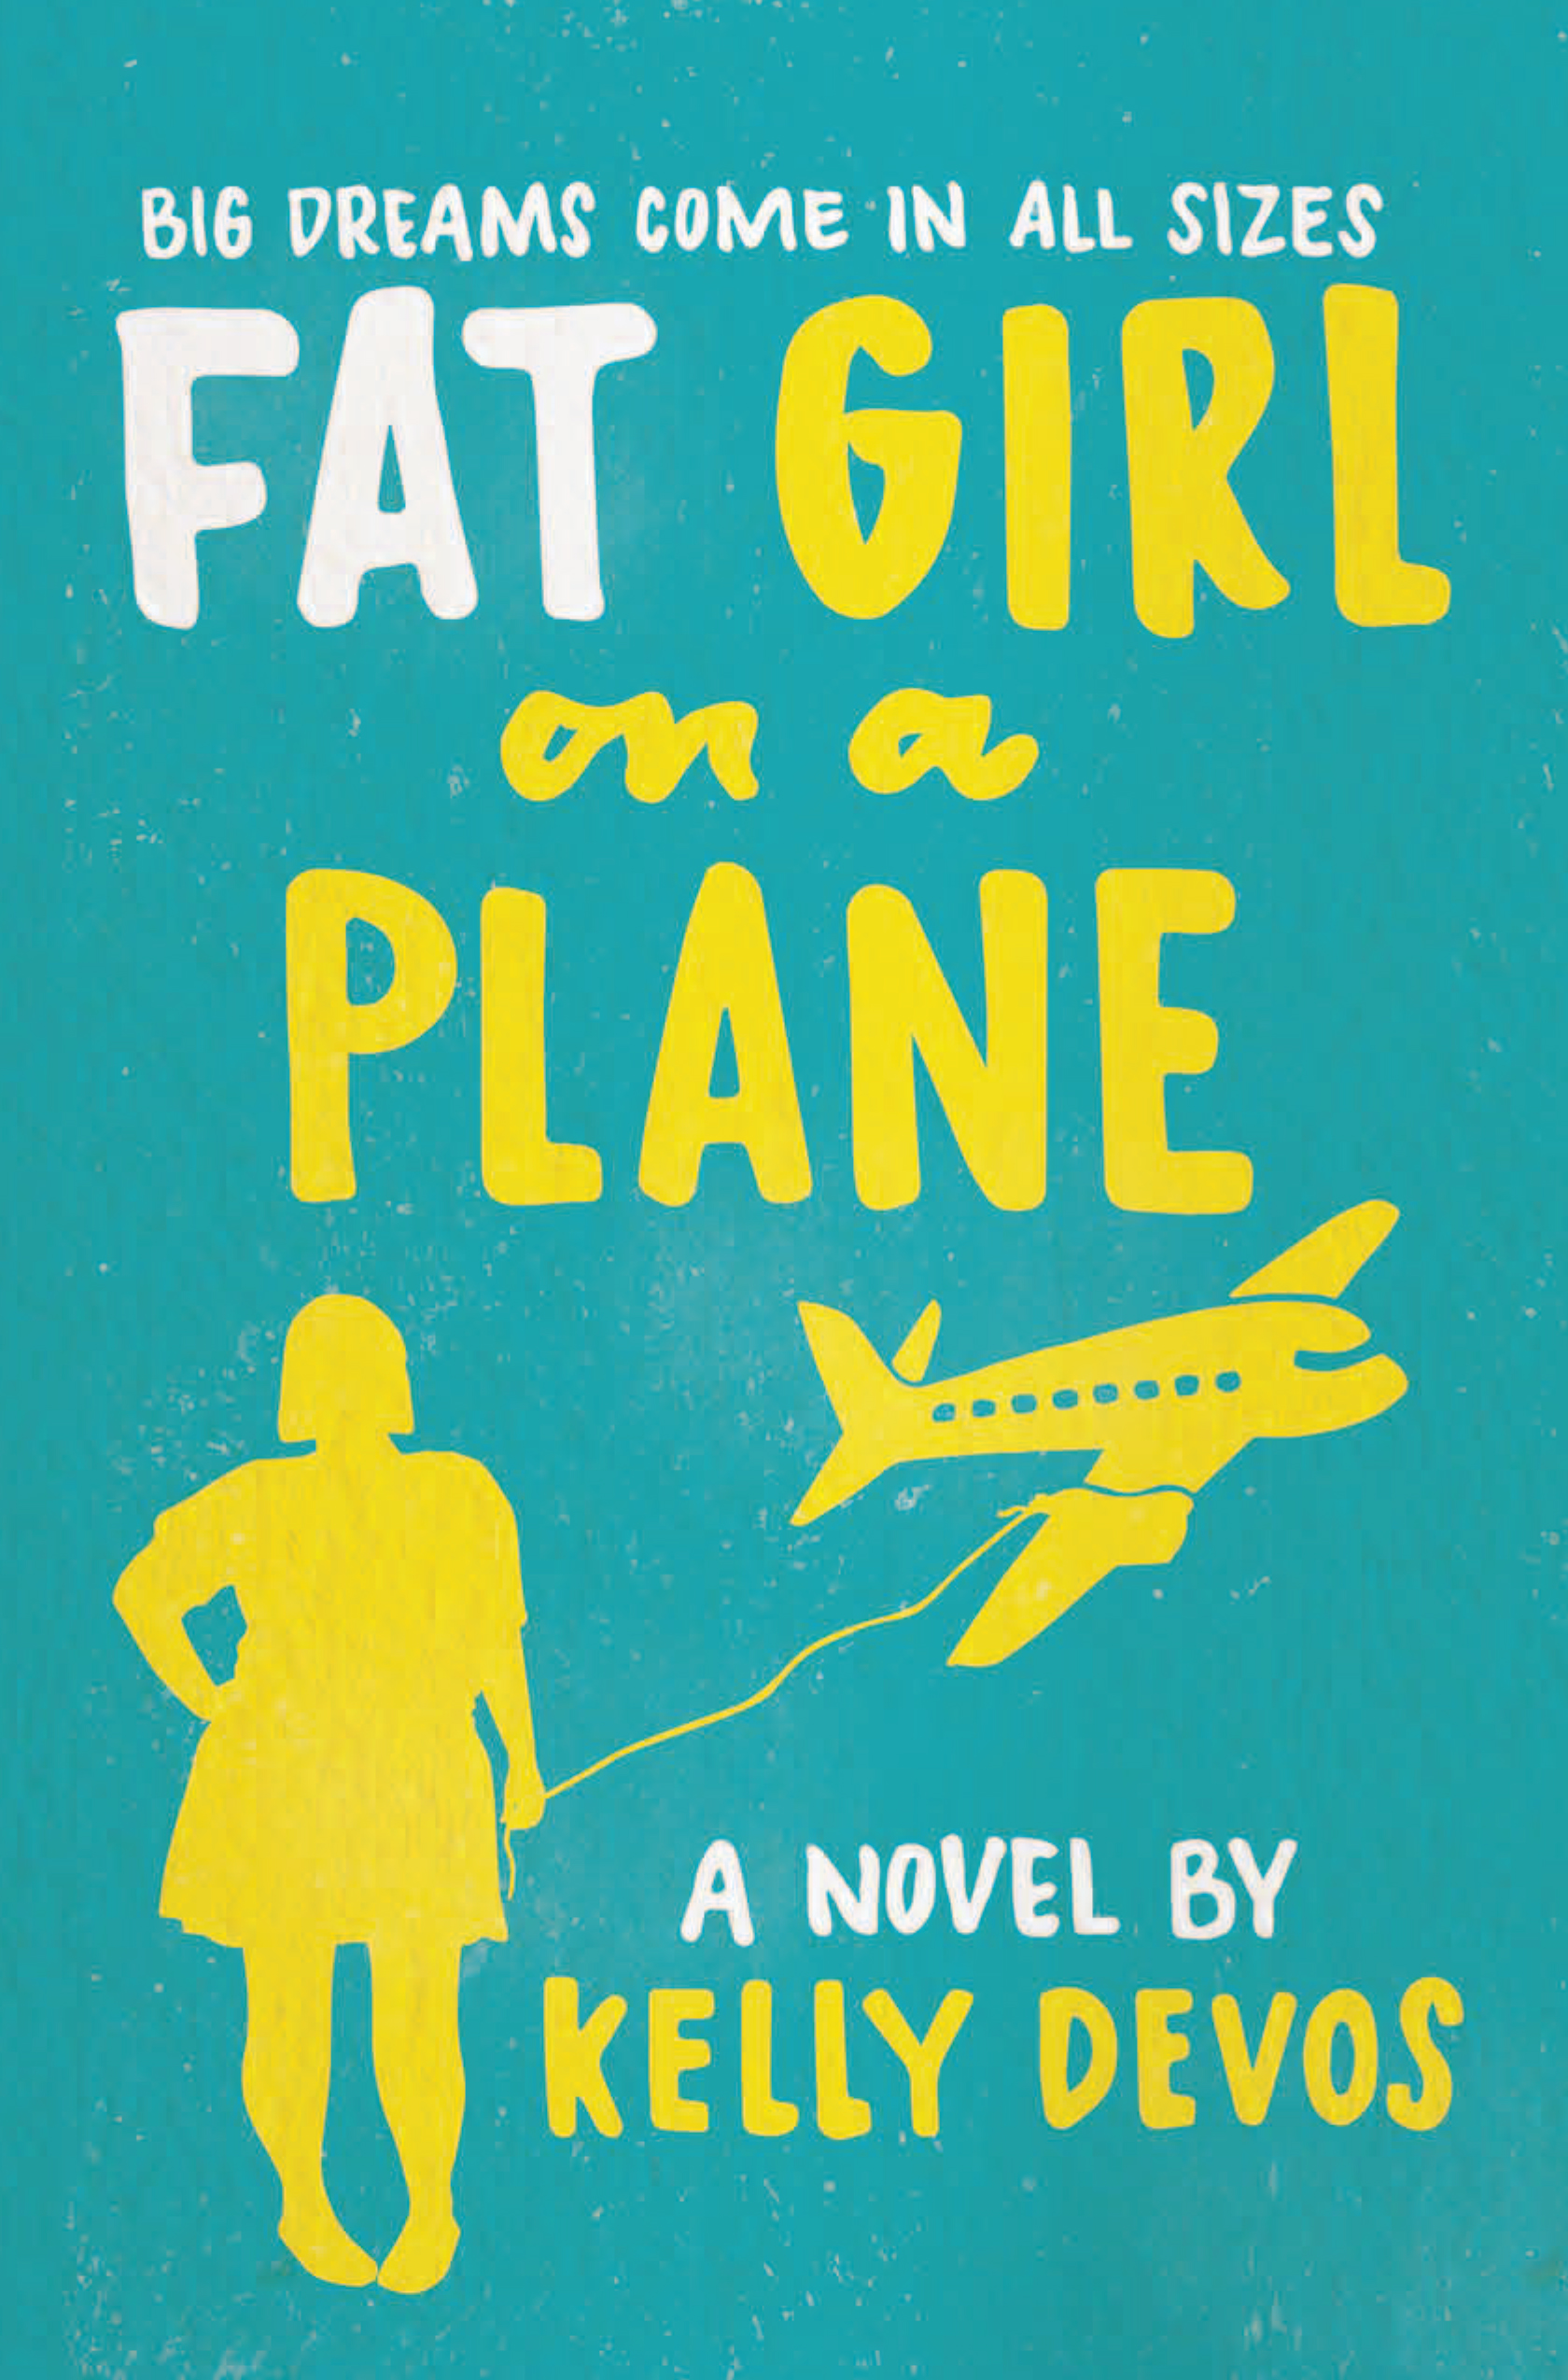 Book Title: Fat Girl on a Plane Author: Kelly Devos Publisher: Harlequin Teen Date of Publication: June 5, 2018